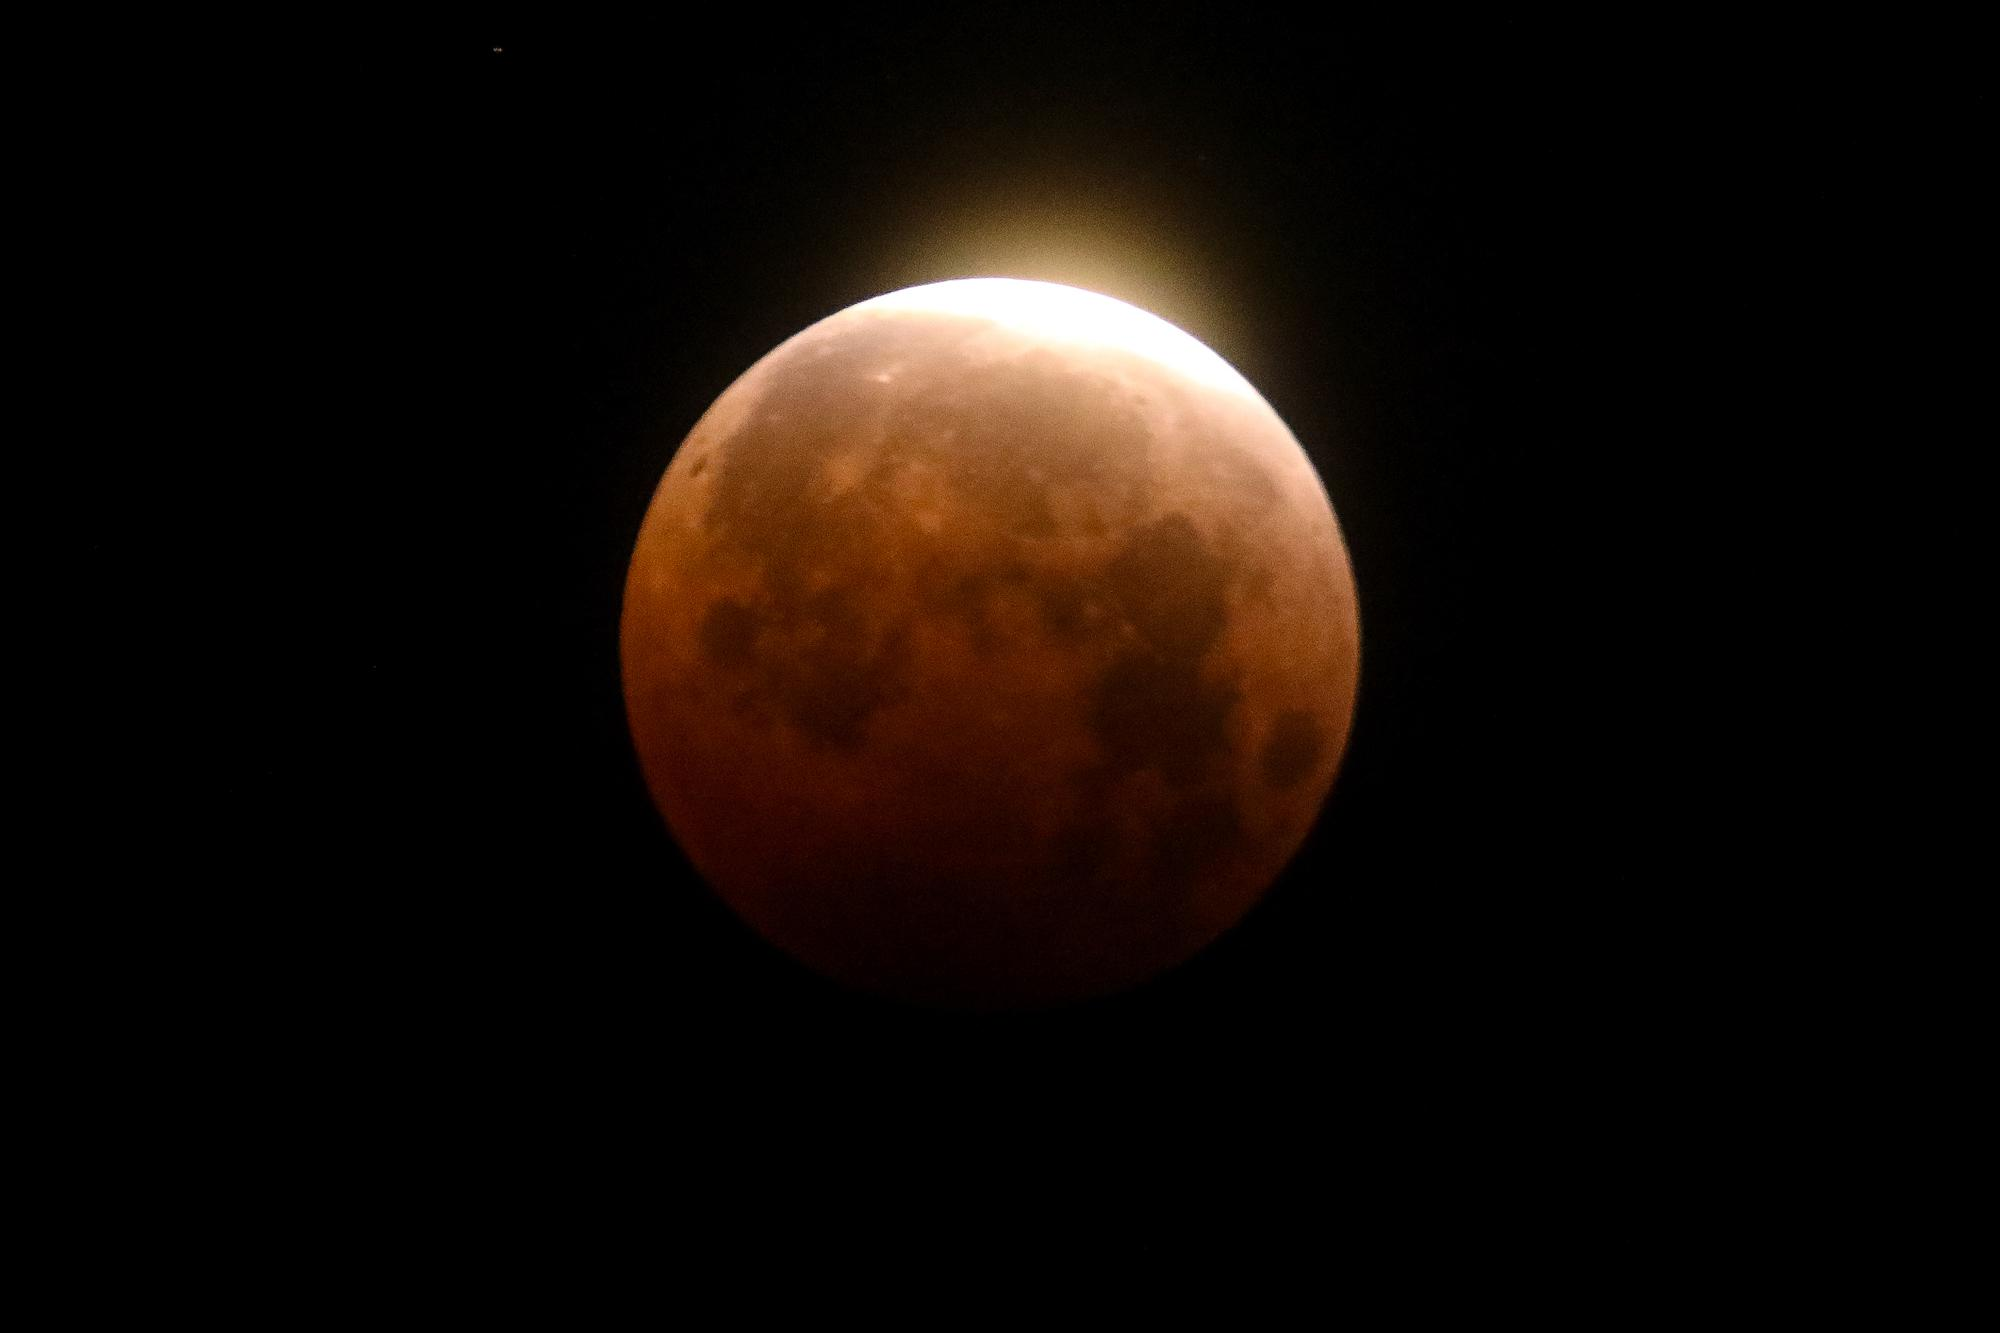 Light shines from a total lunar eclipse over Santa Monica Beach in Santa Monica, Calif., Wednesday, May 26, 2021. The first total lunar eclipse in more than two years is coinciding with a supermoon for quite a cosmic show. (AP Photo/Ringo H.W. Chiu)